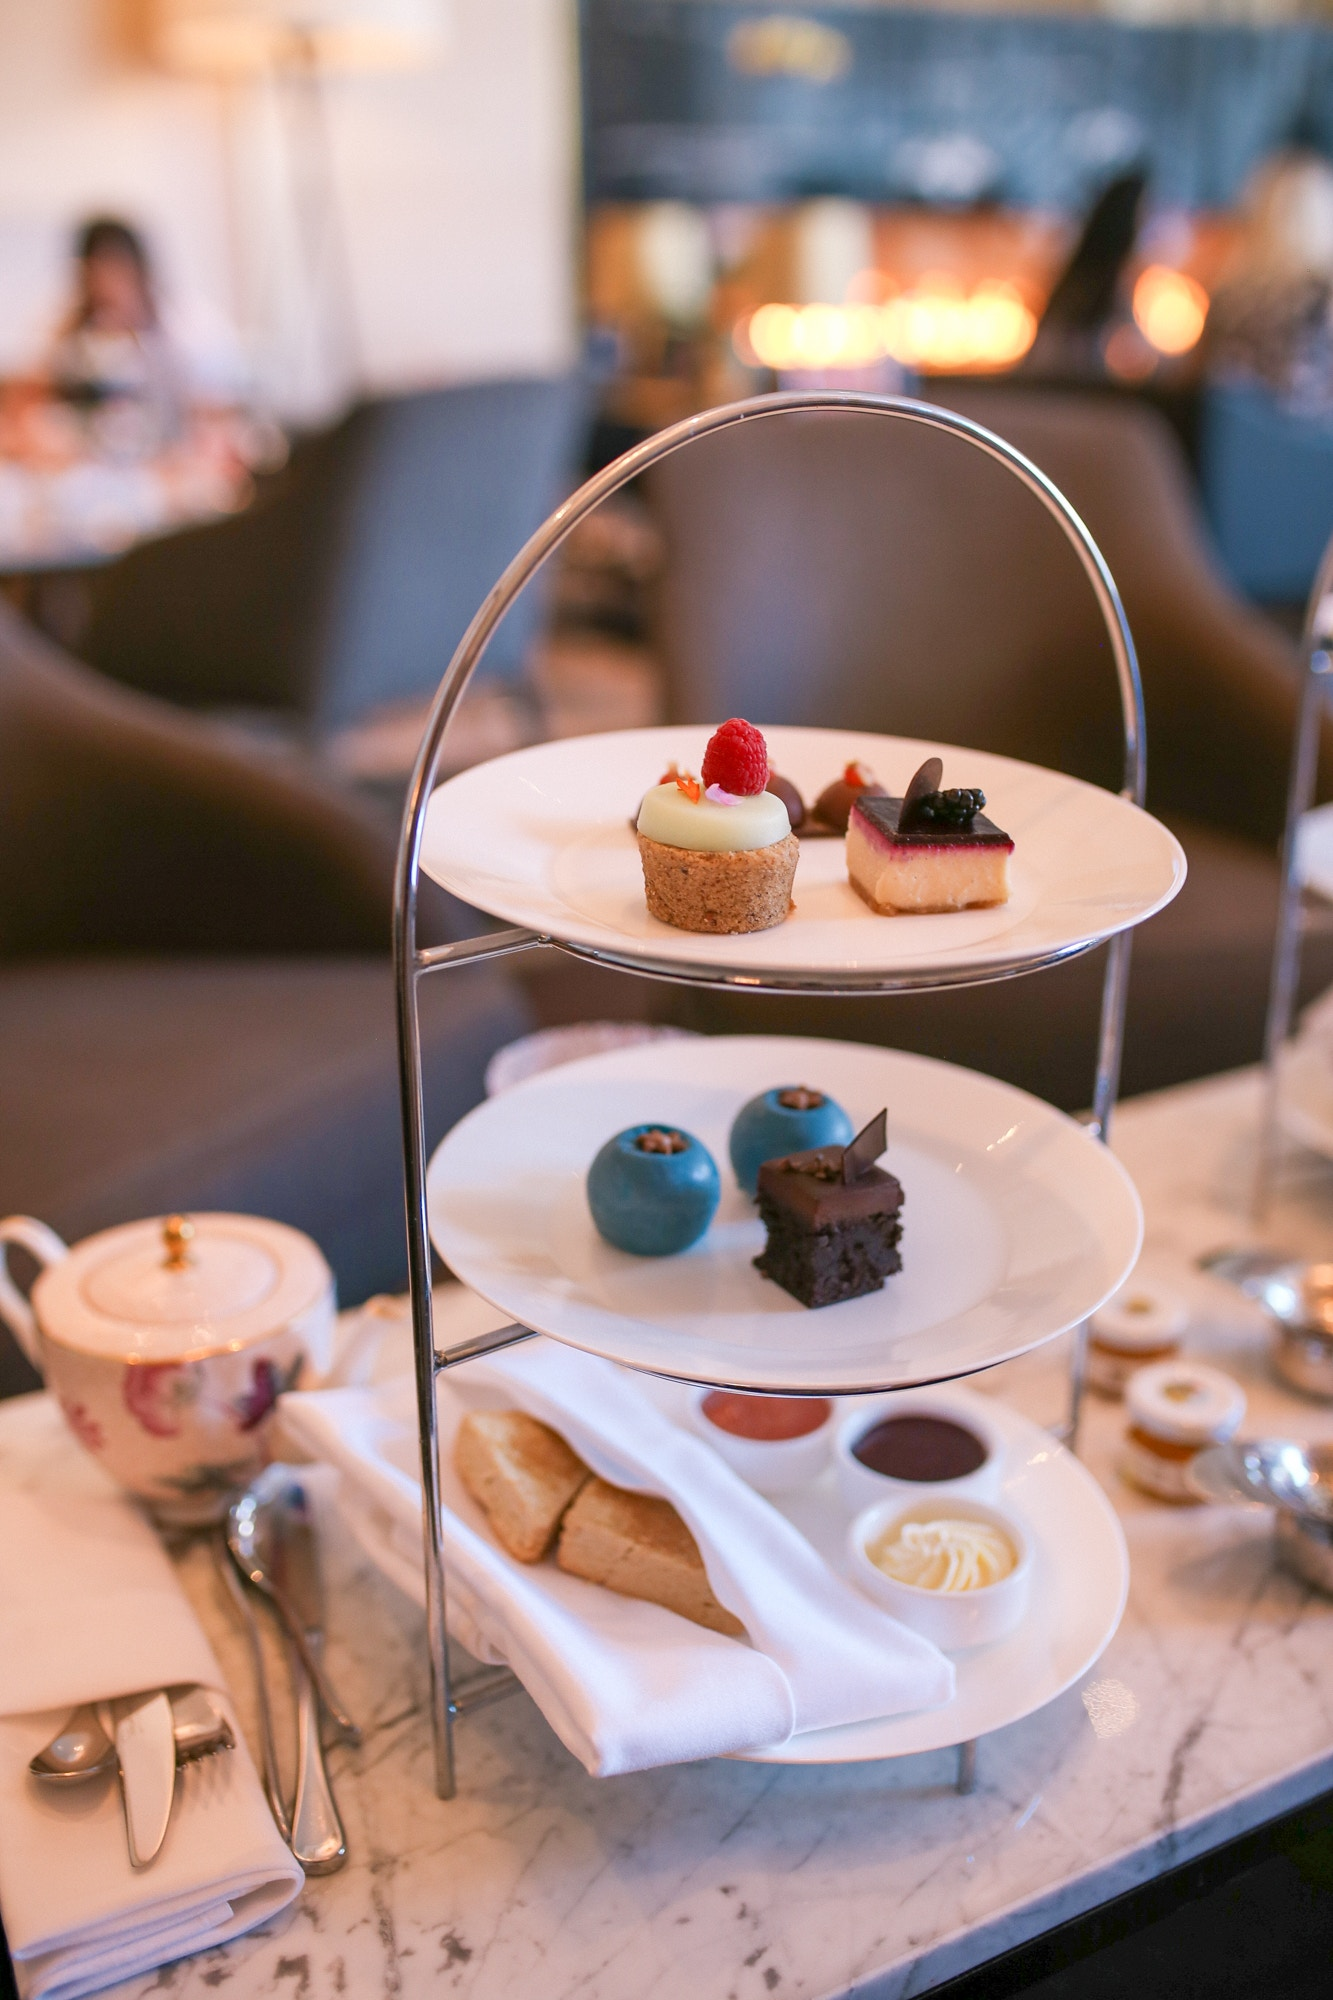 Gluten-free Afternoon High Tea at the Shangri-La.